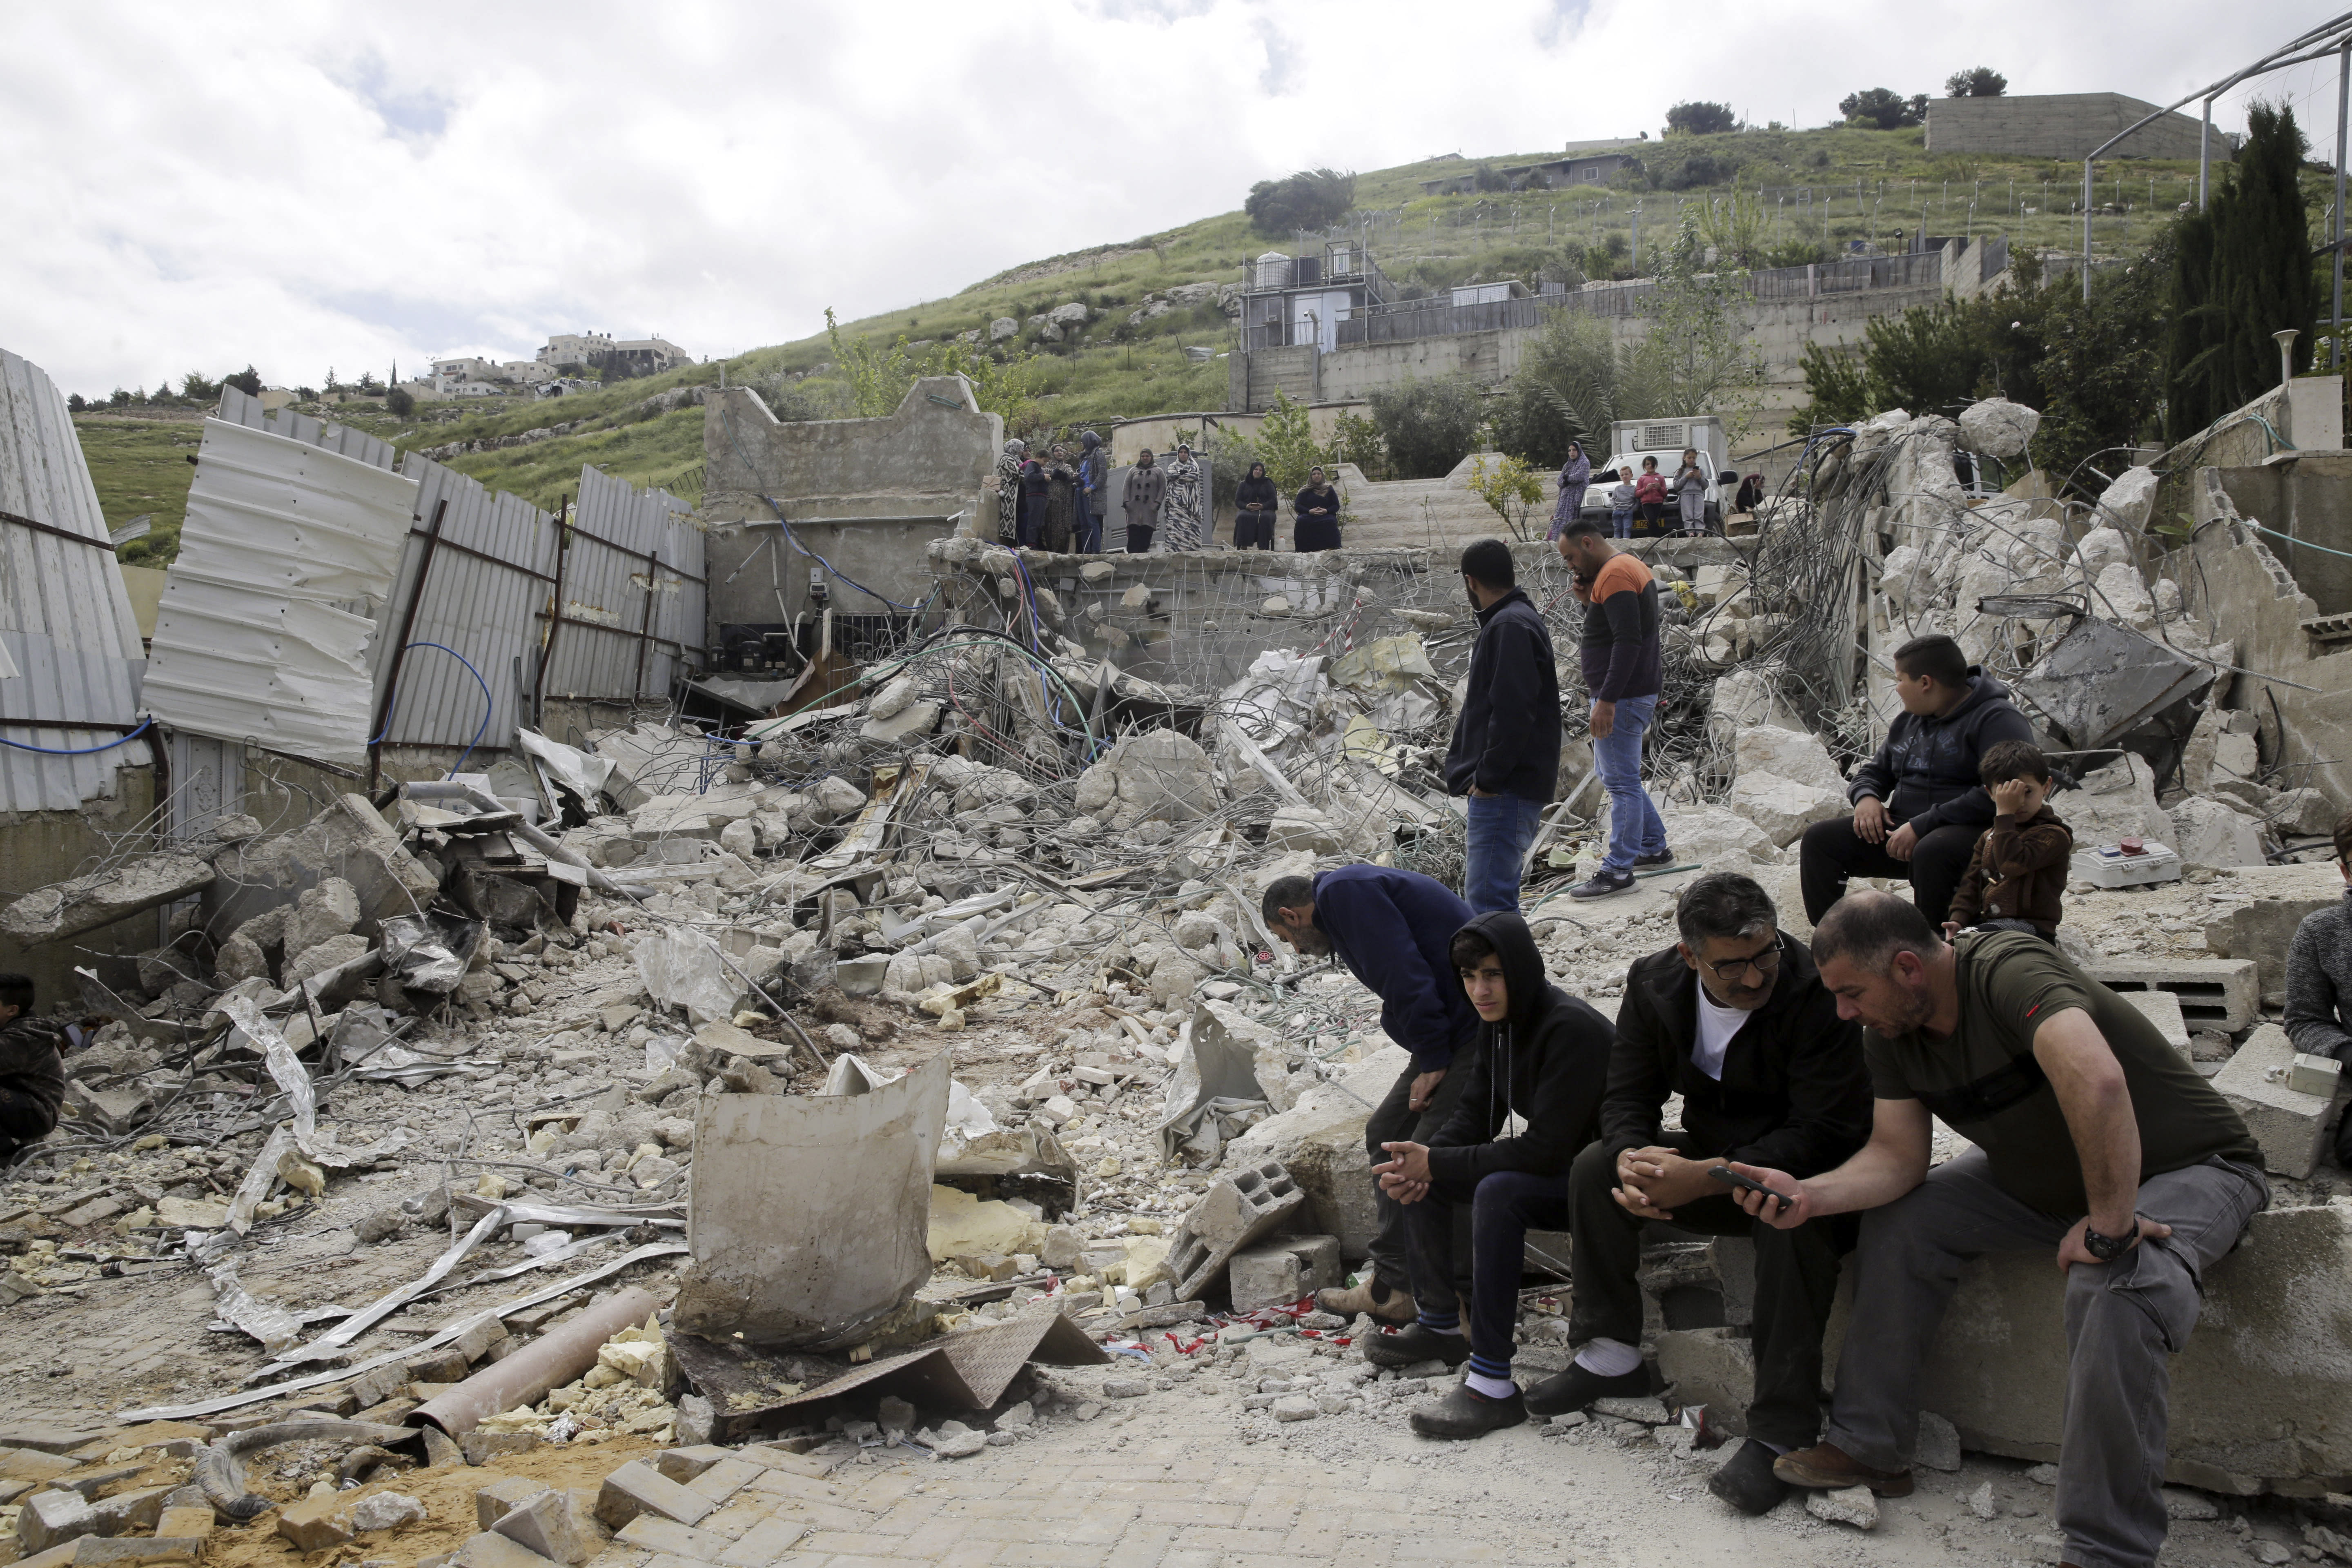 """File - In this April 17, 2019 file photo, Palestinians sit by a family house destroyed by Israeli authorities in east Jerusalem's neighborhood of Silwan. Scores of Palestinian-owned residences in east Jerusalem now face demolition by Israeli authorities after the Supreme Court dismissed residents' appeal on the grounds that the houses were built illegally in a city park. Activists and Palestinian residents of the so-called """"Peace Forest"""" say the case highlights the city's discriminatory housing policies, as construction by a nationalist Jewish organization accelerates in the same park. (AP Photo/Mahmoud Illean, File)"""